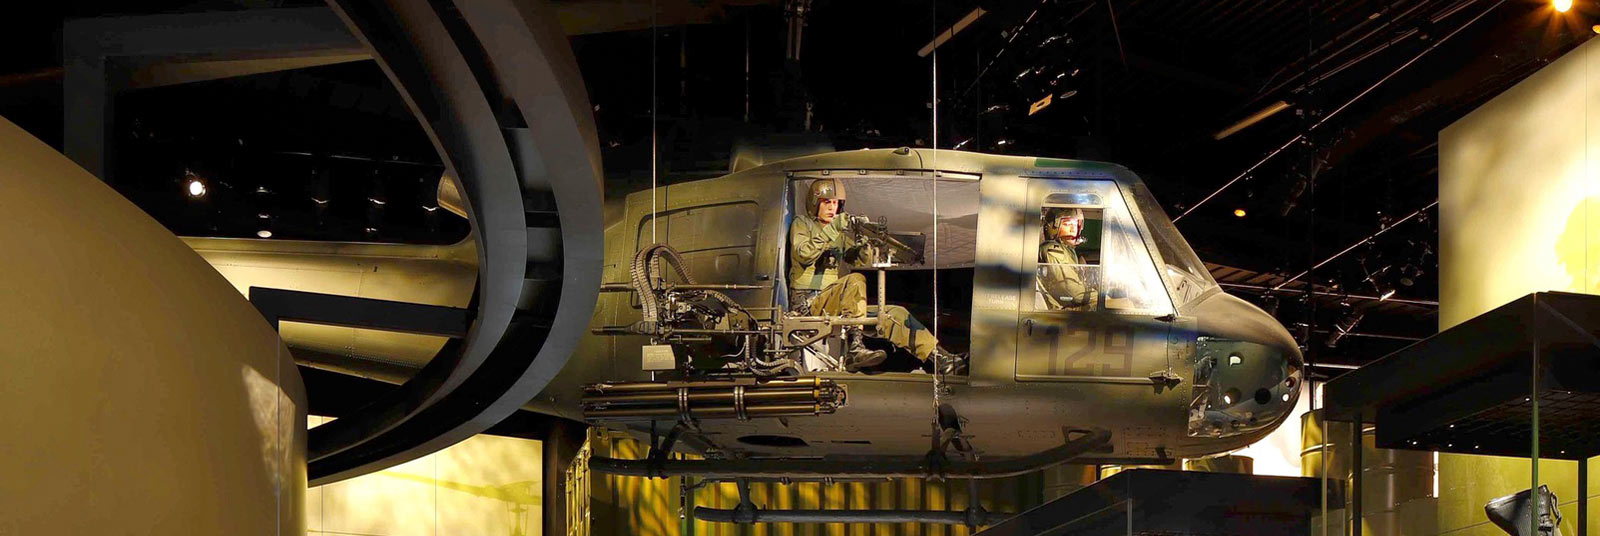 Exhibit space inside the National Museum of the United States Army featuring a helicopter suspended from the ceiling.